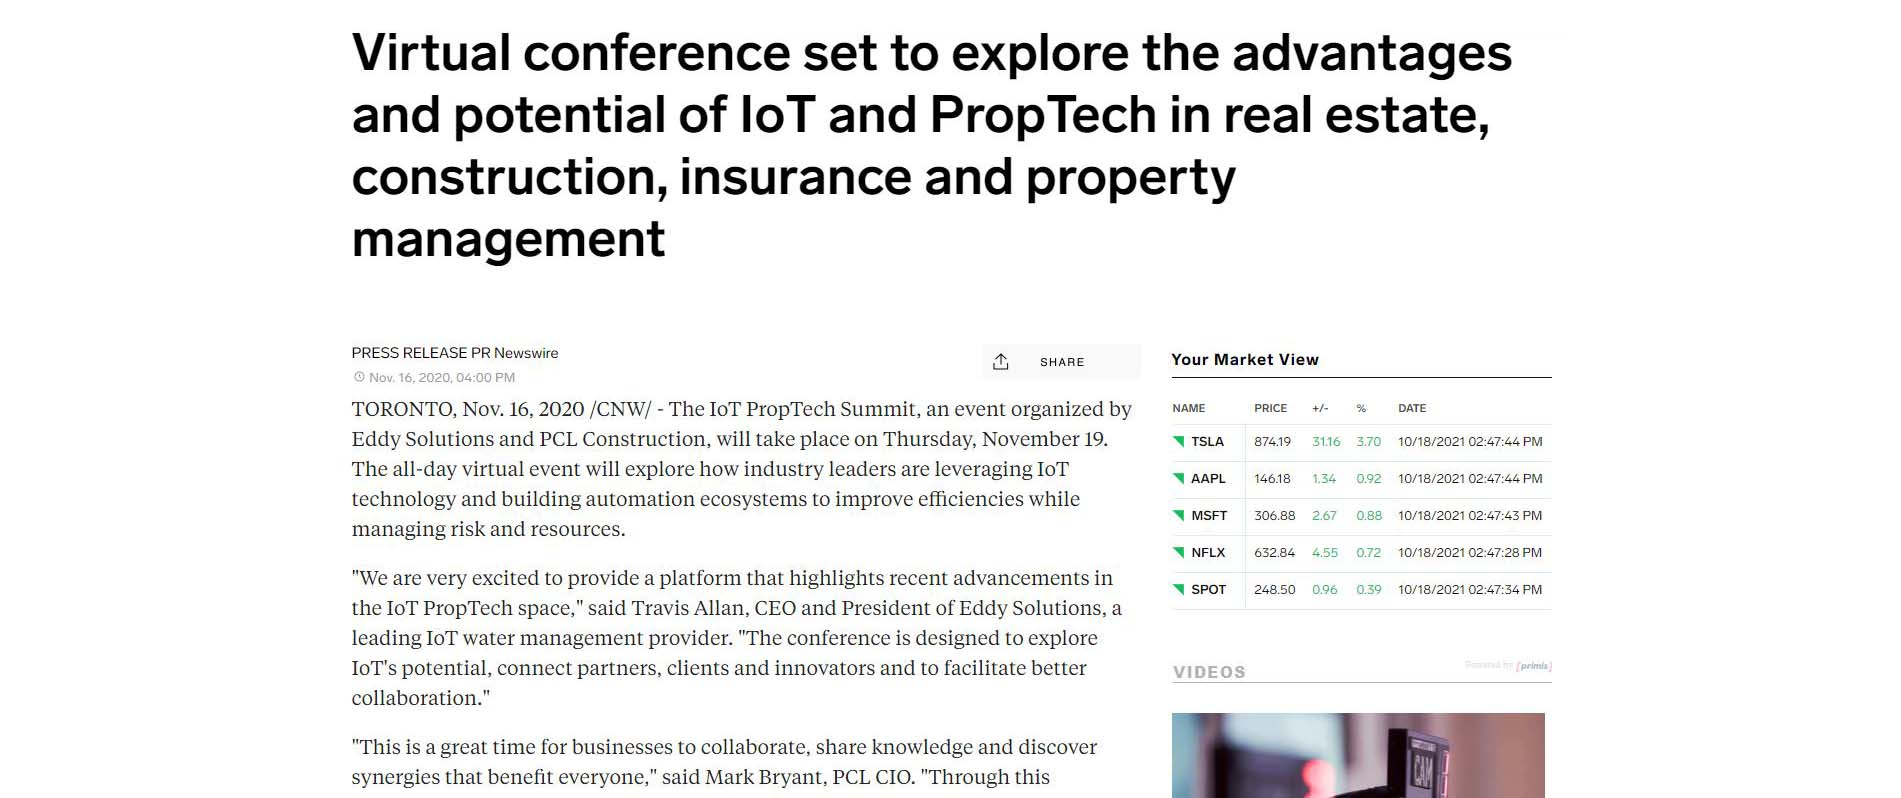 preview of the article about a virtual conference set to explore proptech and sustainability